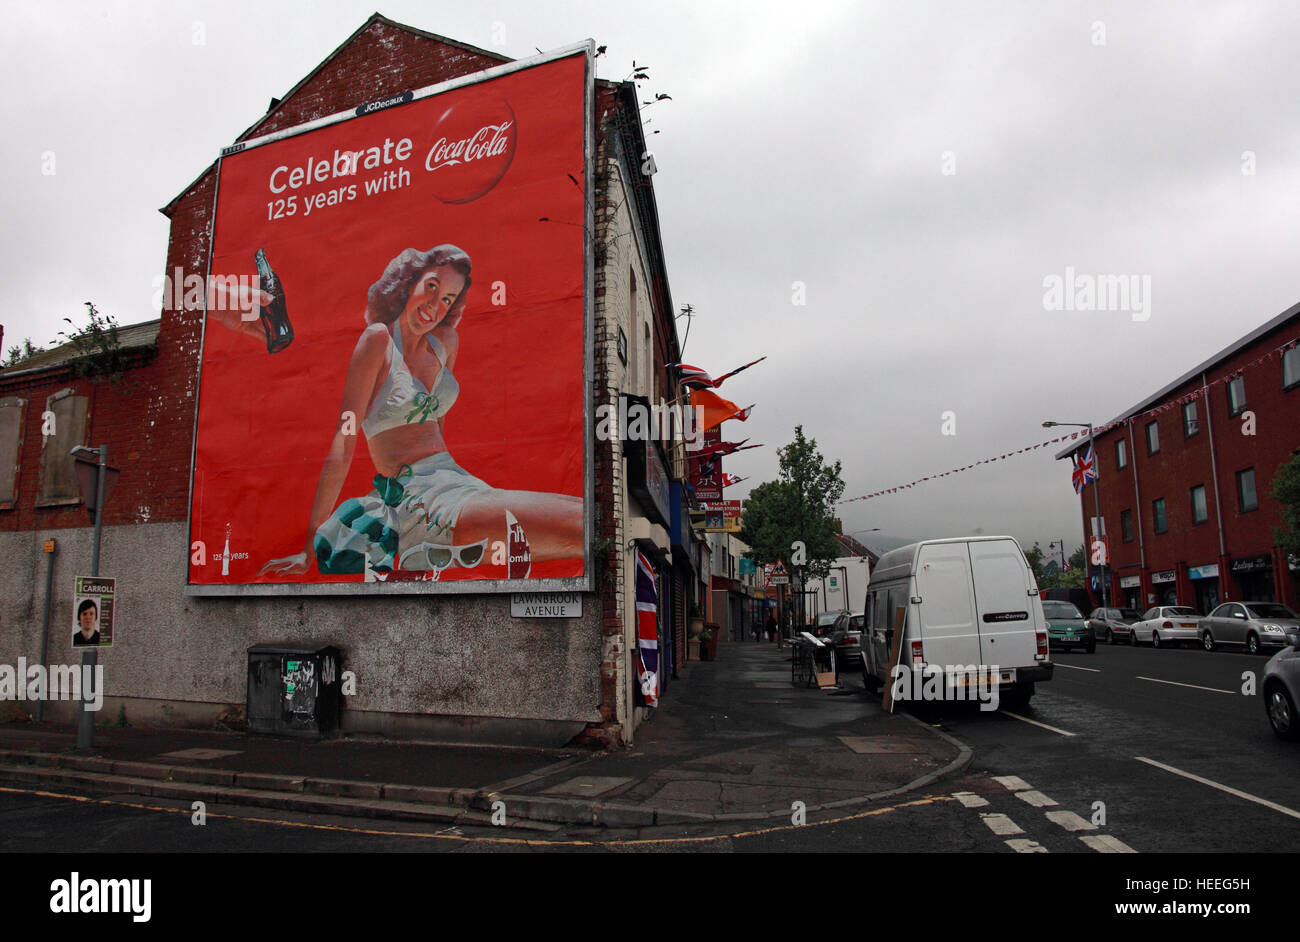 Mural,art,British,Union,wall,walls,gable end,gable,end,Northern,Irish,Republican,violence,para,military,paramilitary,fallen,Martyrs,martyr,street,rd,road,painting,painted,symbolism,Loyalist,culture,history,community,Ave,CocaCola,Lawnbrook,Avenue,GoTonySmith,@HotpixUK,Tony,Smith,UK,GB,Great,Britain,United,Kingdom,Irish,British,Ireland,problem,with,problem with,issue with,NI,Northern,Northern Ireland,Belfast,City,Centre,Art,Artists,the,troubles,The Troubles,Good Friday Agreement,Peace,honour,painting,wall,walls,tribute,republicanism,Fight,Justice,West,Beal,feirste,martyrs,social,tour,tourism,tourists,urban,six,counties,6,backdrop,county,Antrim,Belfast streets,Buy Pictures of,Buy Images Of,Images of,Stock Images,Tony Smith,United Kingdom,Great Britain,British Isles